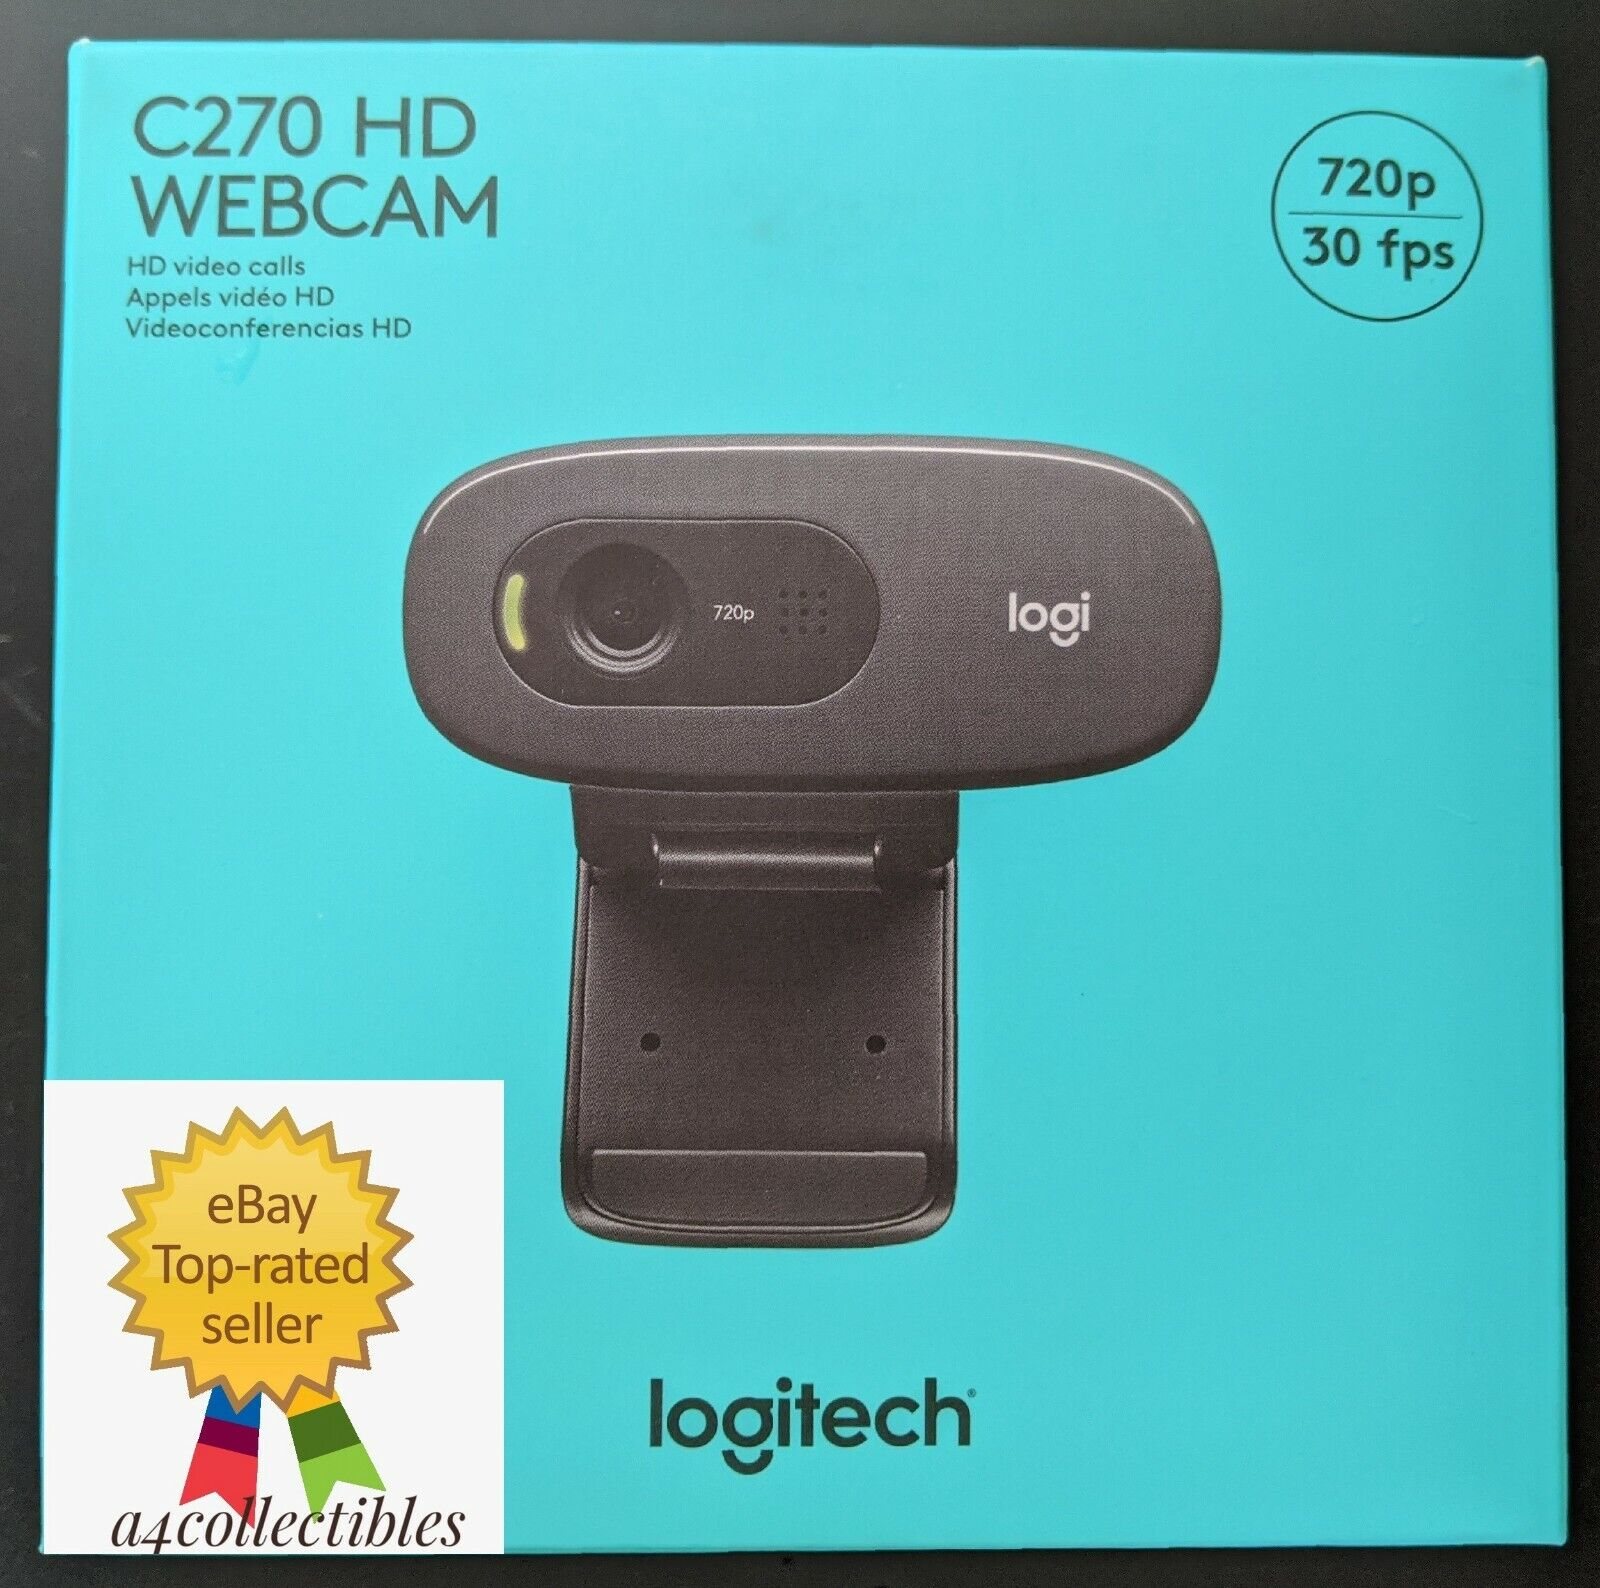 Logitech C270 Hd Webcam 720p Black Video Web Cam In Hand Fast Shipping 97855070739 Ebay